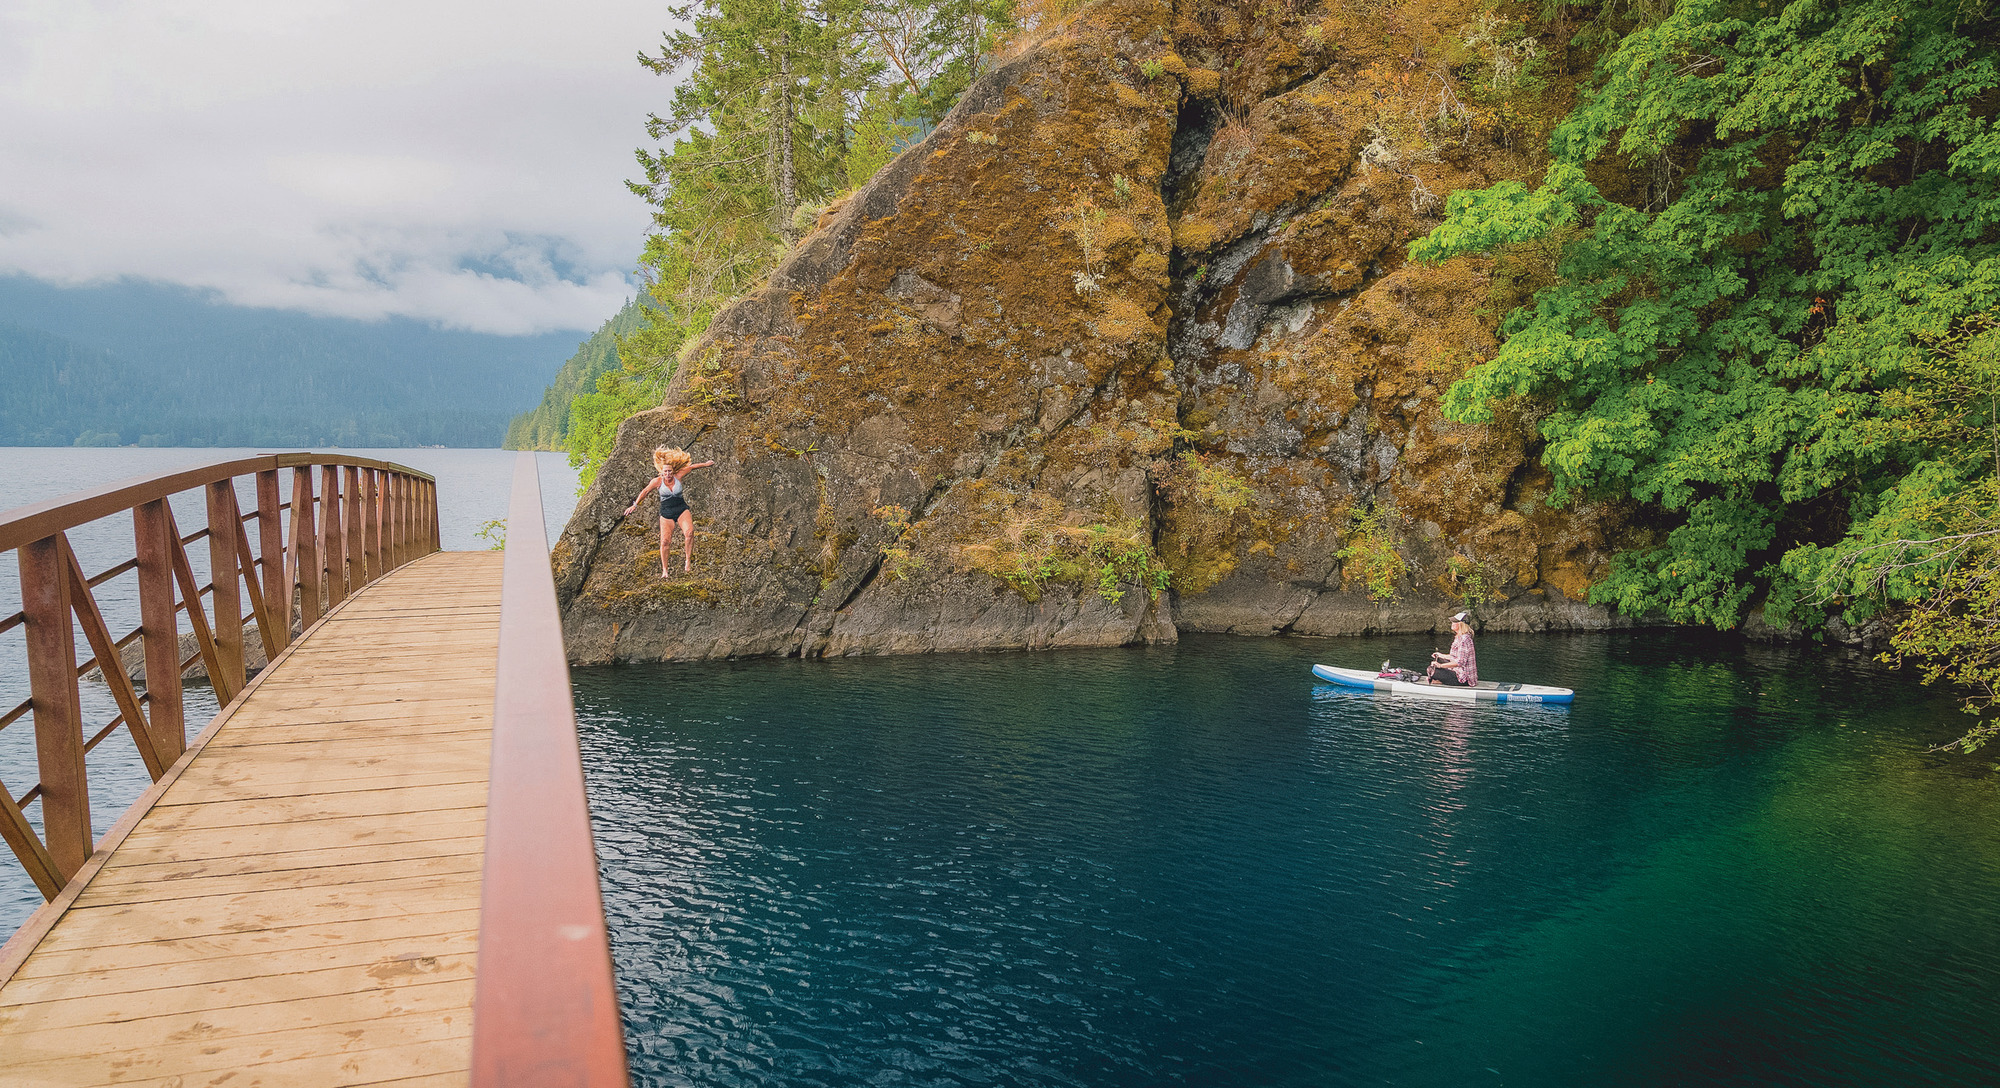 Swim radiantly blue waters at Devil's Punchbowl, in Olympic National Park's Lake Crescent.